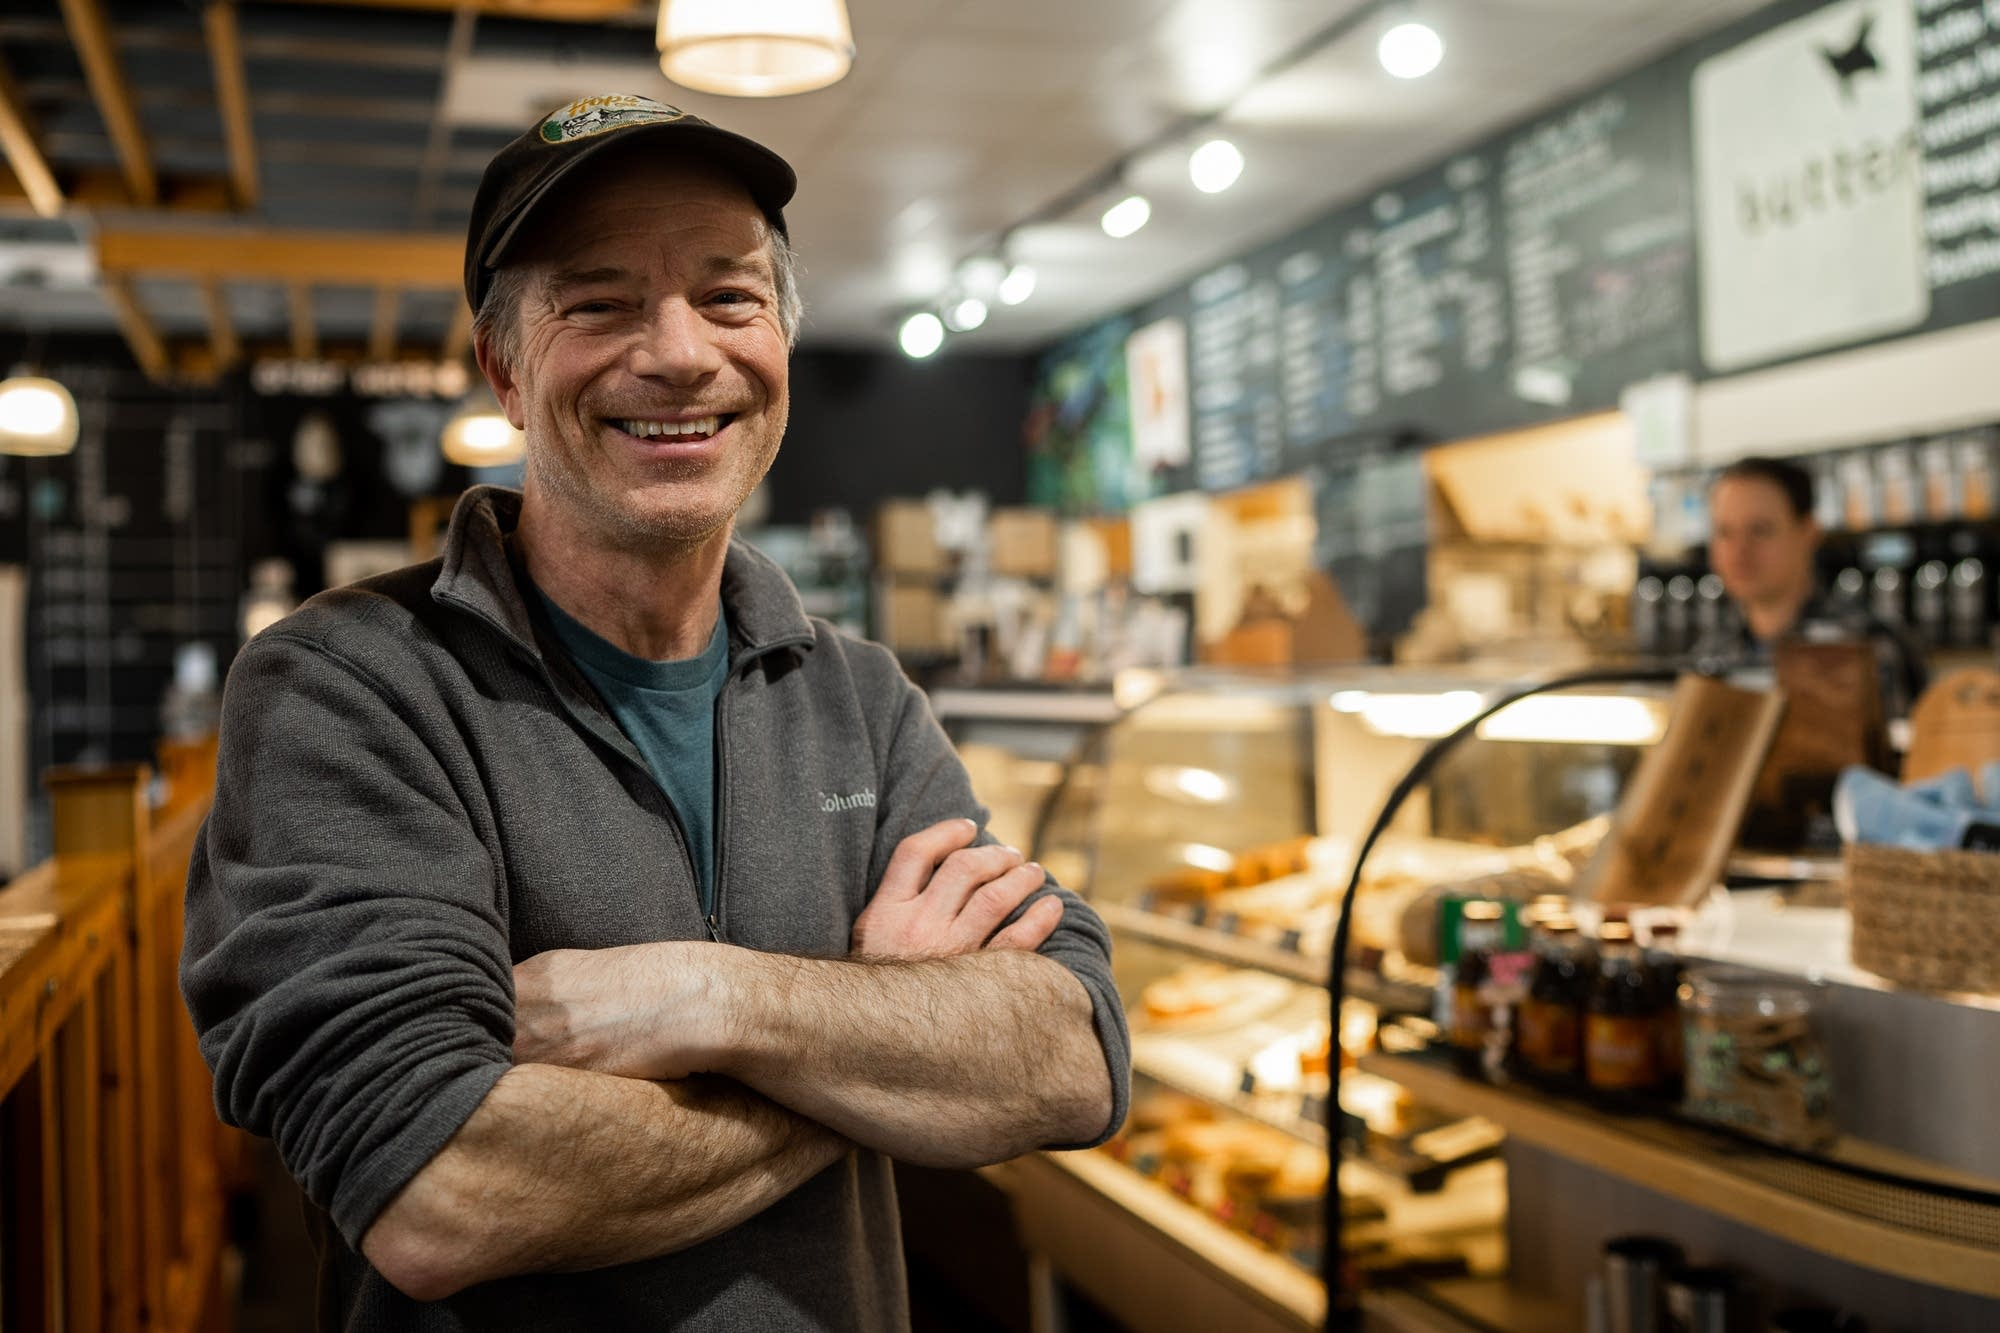 Daniel Swenson-Klatt, owner of Butter Bakery Cafe, stands for a portrait.